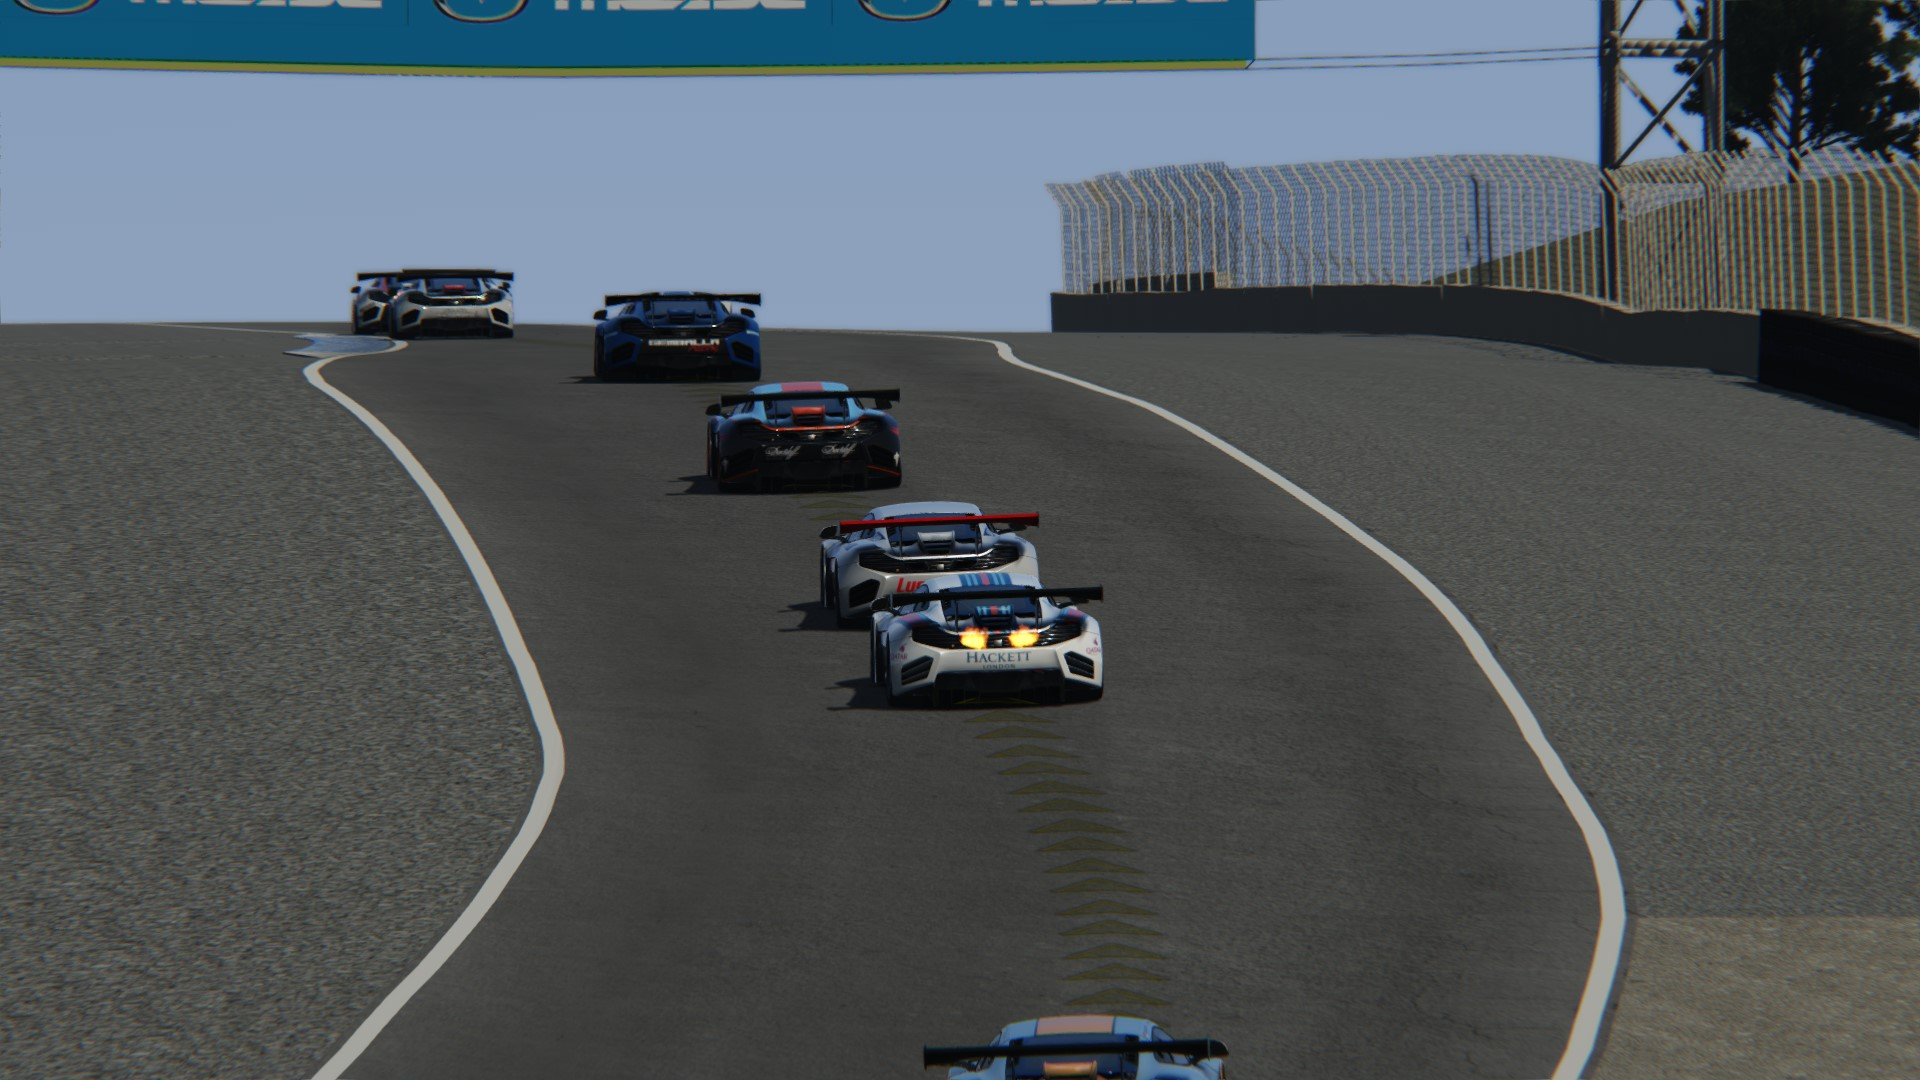 Screenshot_mclaren_mp412c_gt3_bs_lagunaseca_29-5-116-16-43-35.jpg